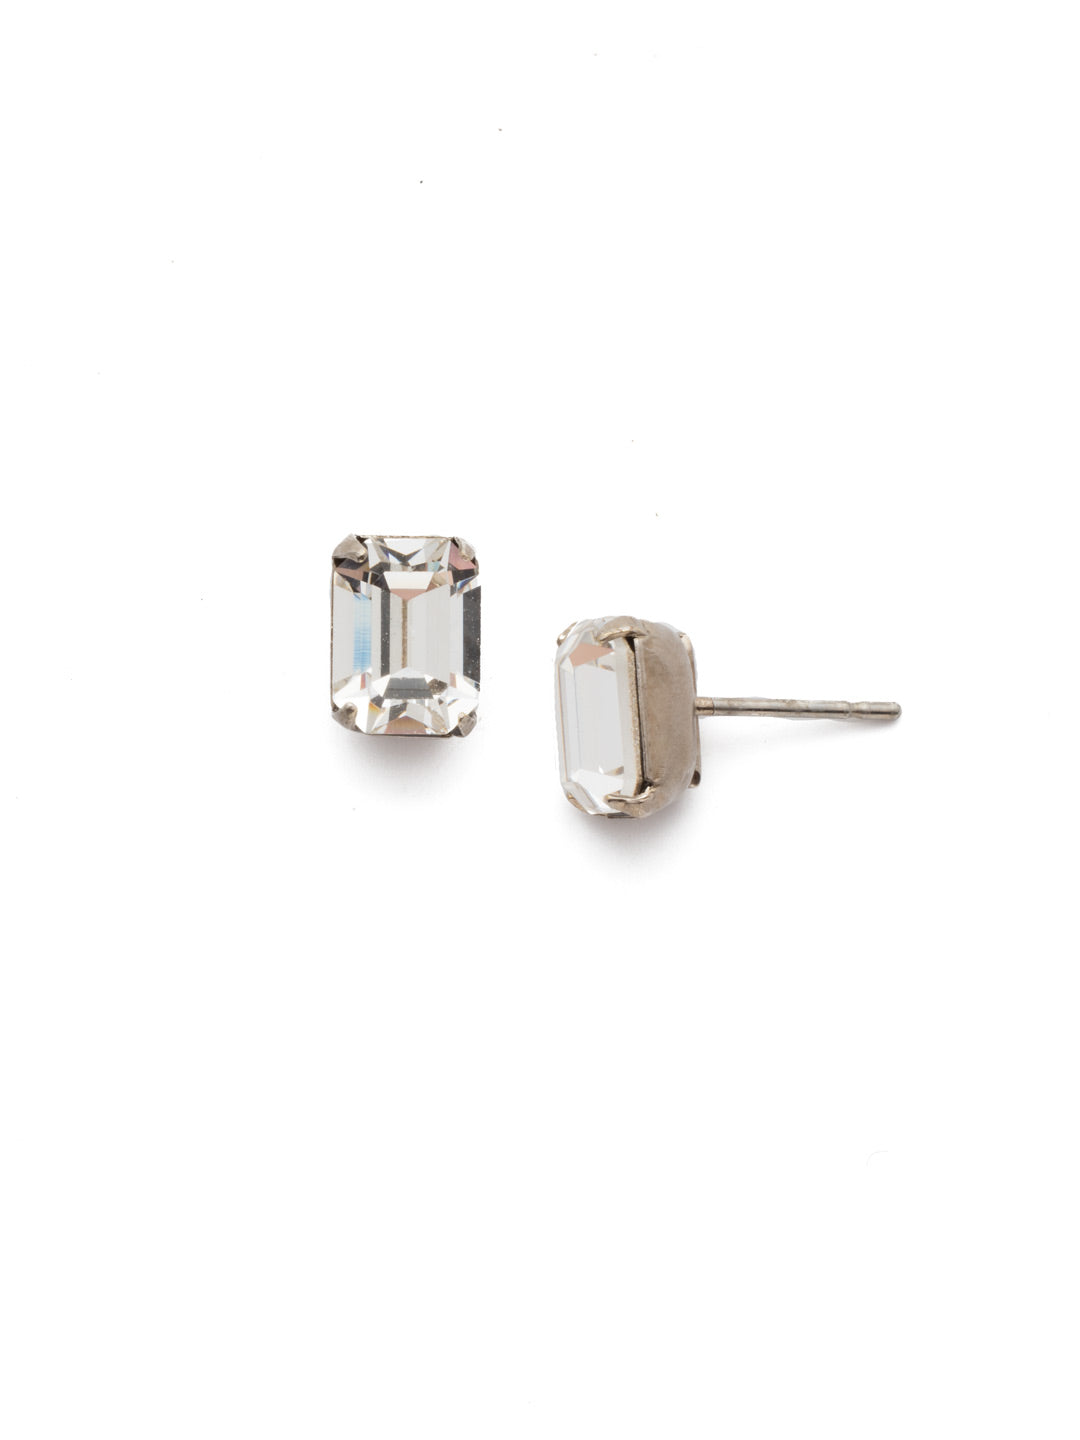 Mini Emerald Cut Stud Earrings - EBY42ASCRY